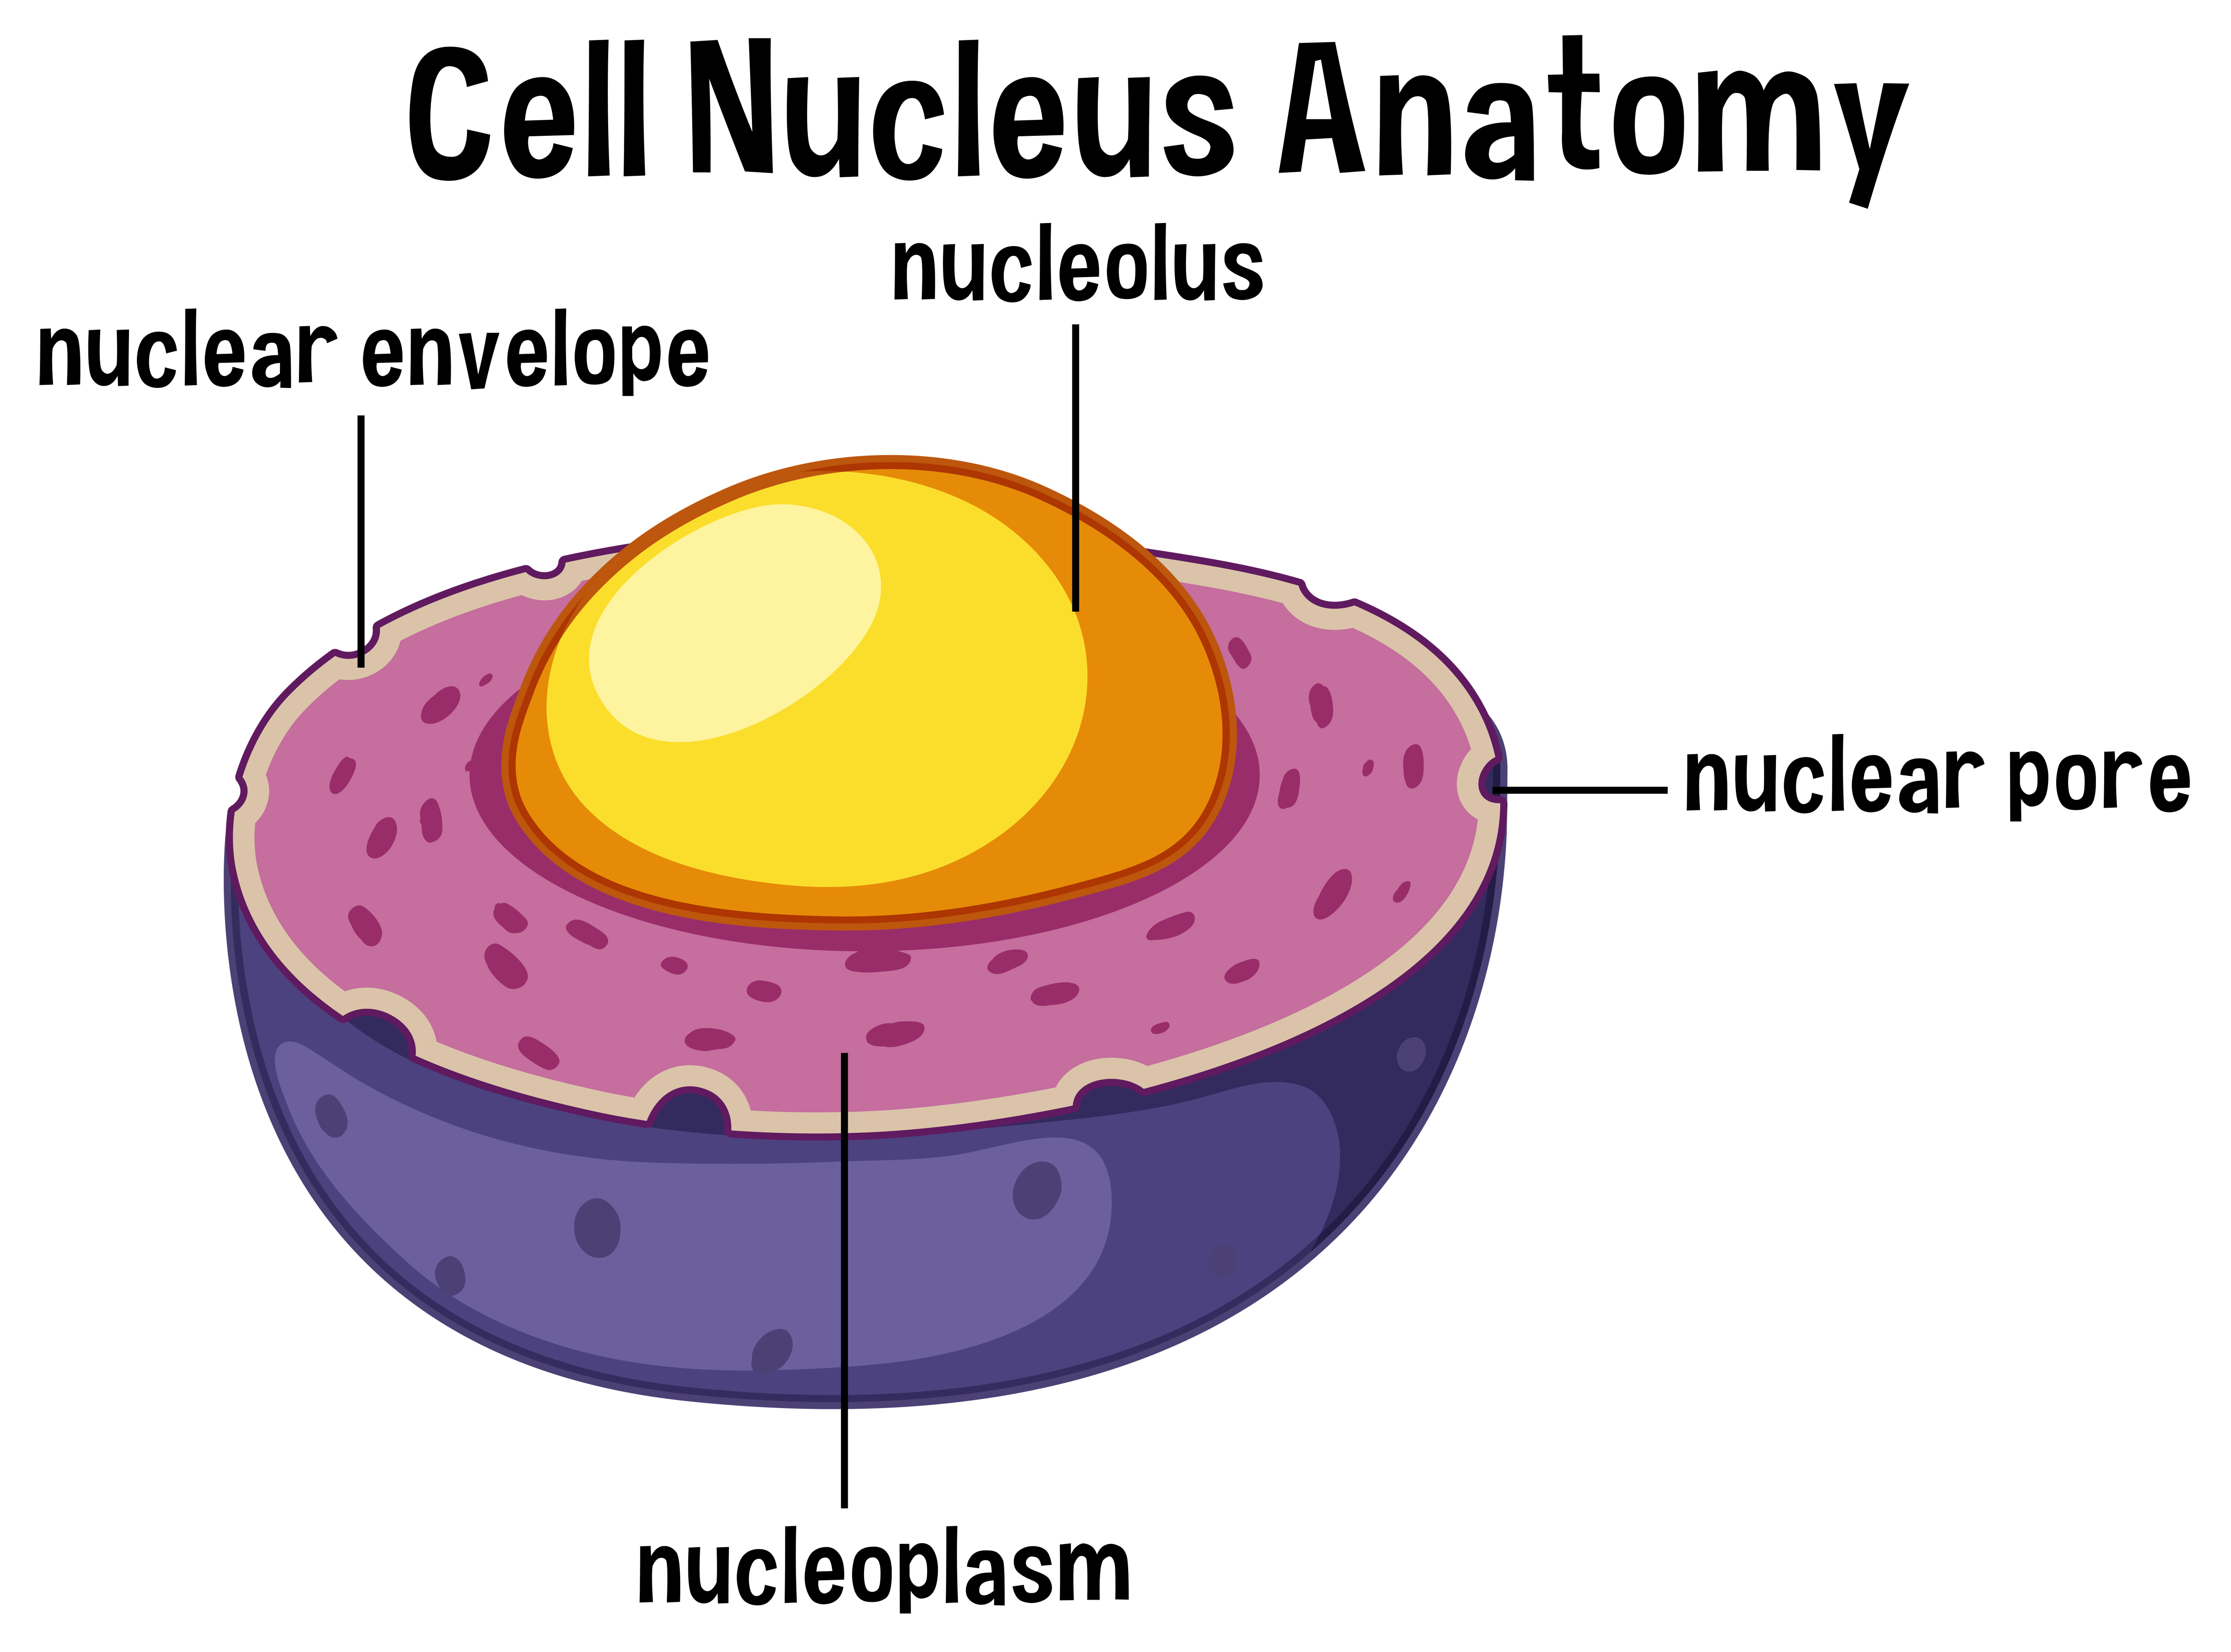 Animal cell nucleus anatomy - Download Free Vectors ...